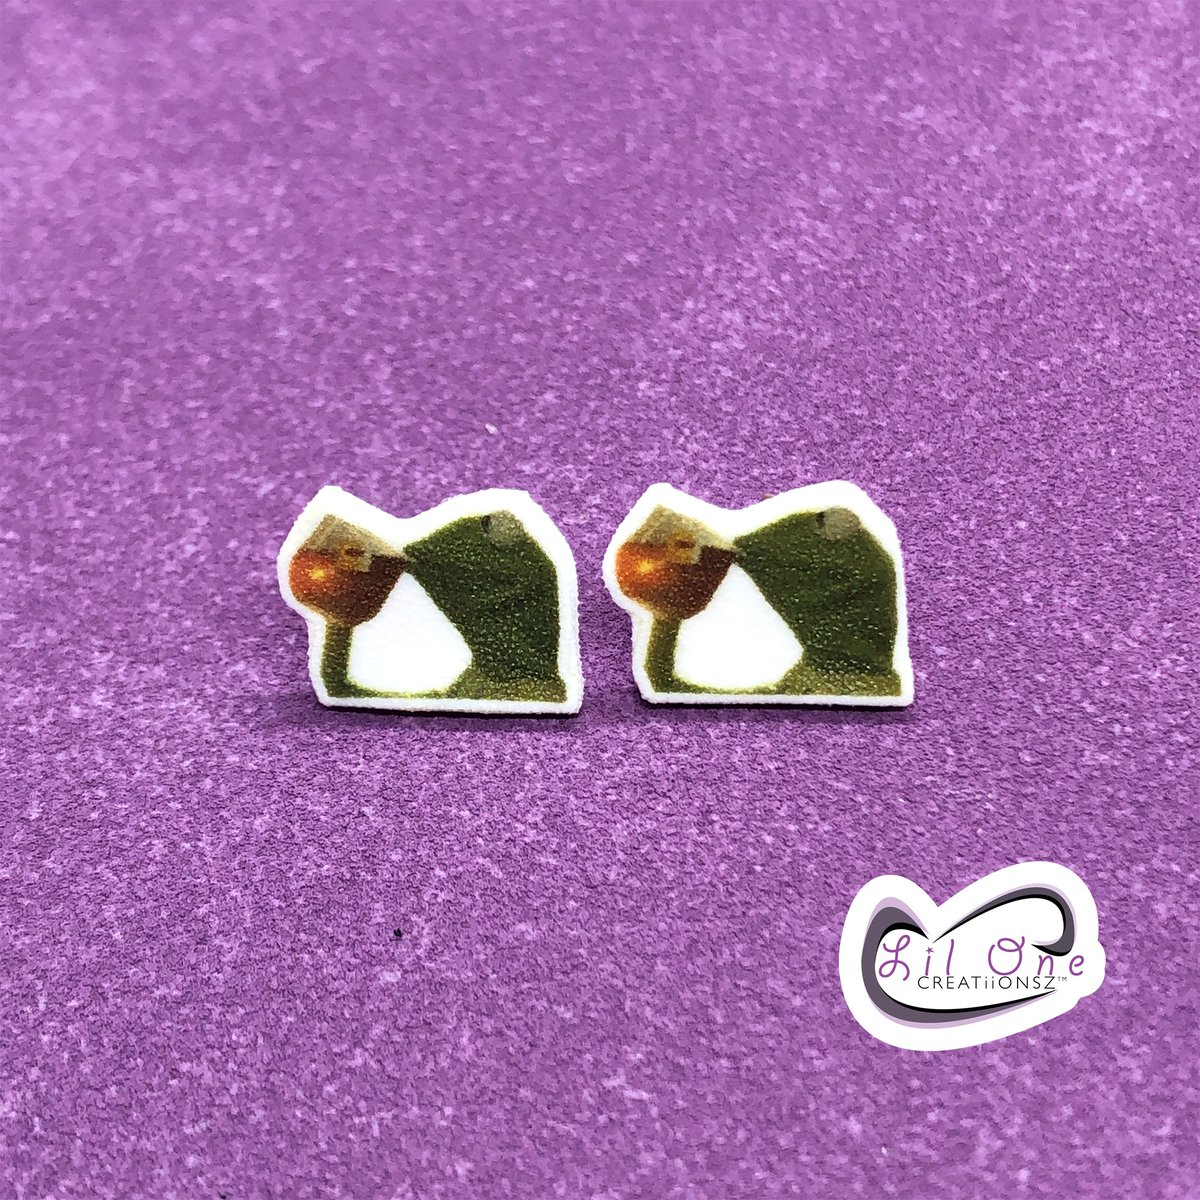 Kermit the Frog and his #tea SIP SIP! Lol  Available on my Etsy as earrings or a pin    Etsy Shop: https://www.etsy.com/shop/LiLONECREATiiONSZ… . #etsyshop #lilonecreatiionsz #handmade #meme #kermitmemes #kermit #kermitmeme #kermitthefrog #kermitsip #morningtea #tealover #thatsnoneofmybusinesspic.twitter.com/ij7Y7D4WeM